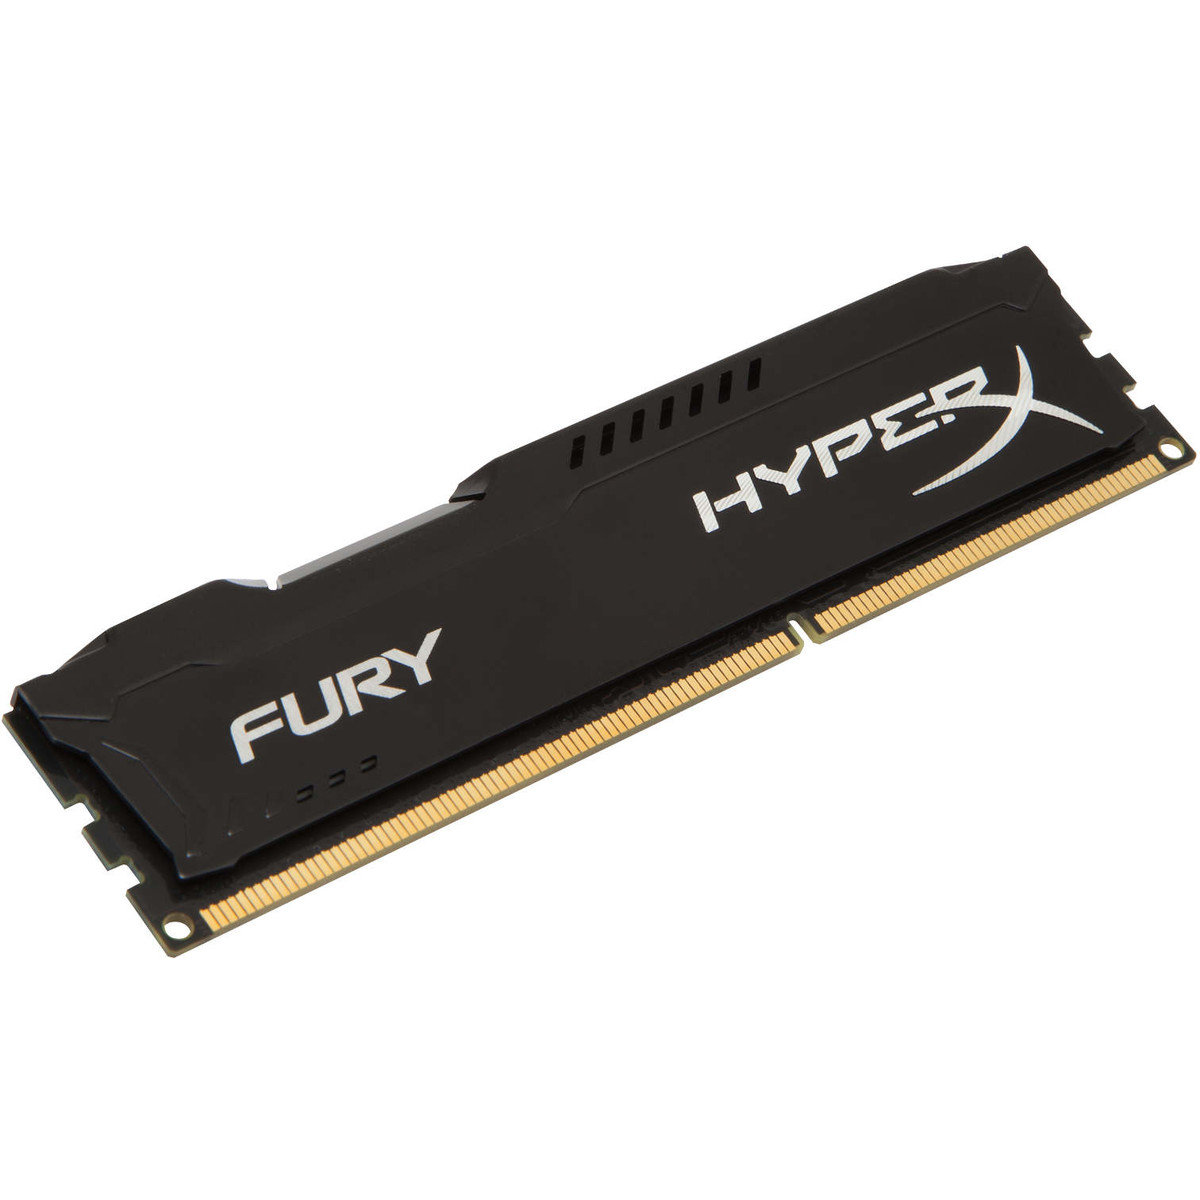 Memorie HX313C9FB/8 HyperX Fury Black, 8GB DDR3 1333MHz CL9